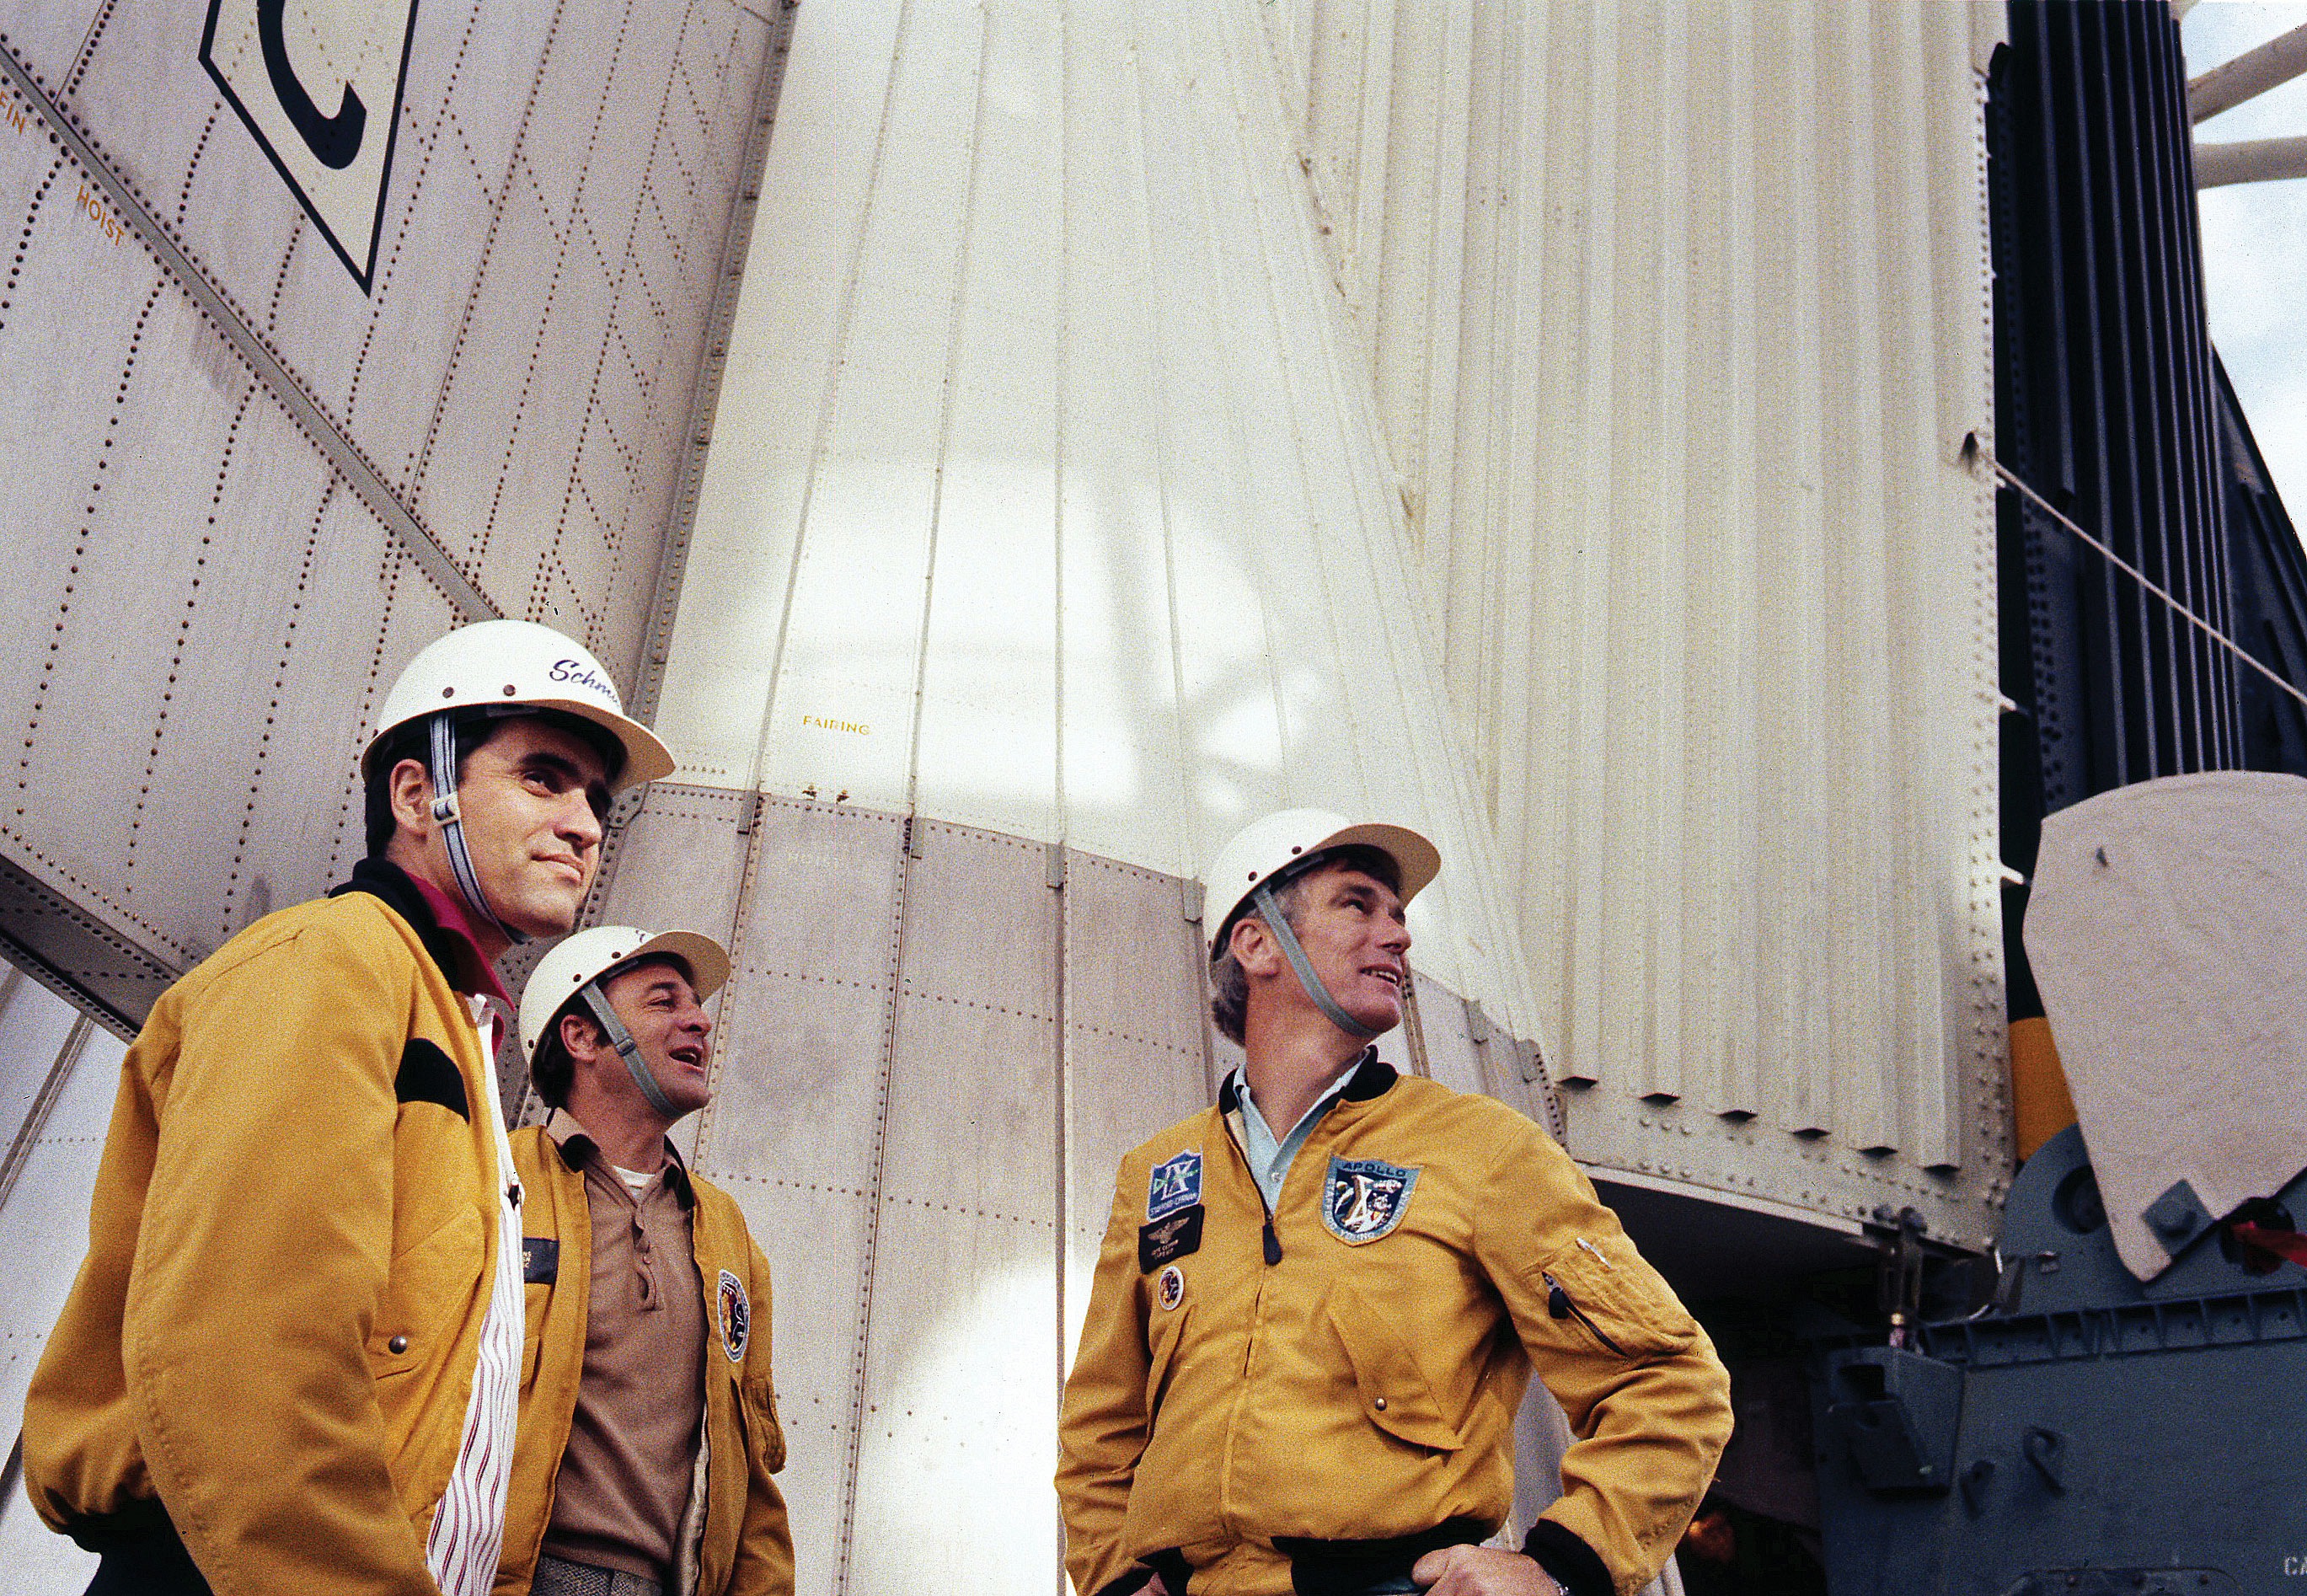 Harrison Schmitt, Ron Evans, and Gene Cernan stand at the base of their Saturn V rocket during a visit to the pad just days before the launch of Apollo 17. Credit: NASA via J.L. Pickering/Retro Space Images